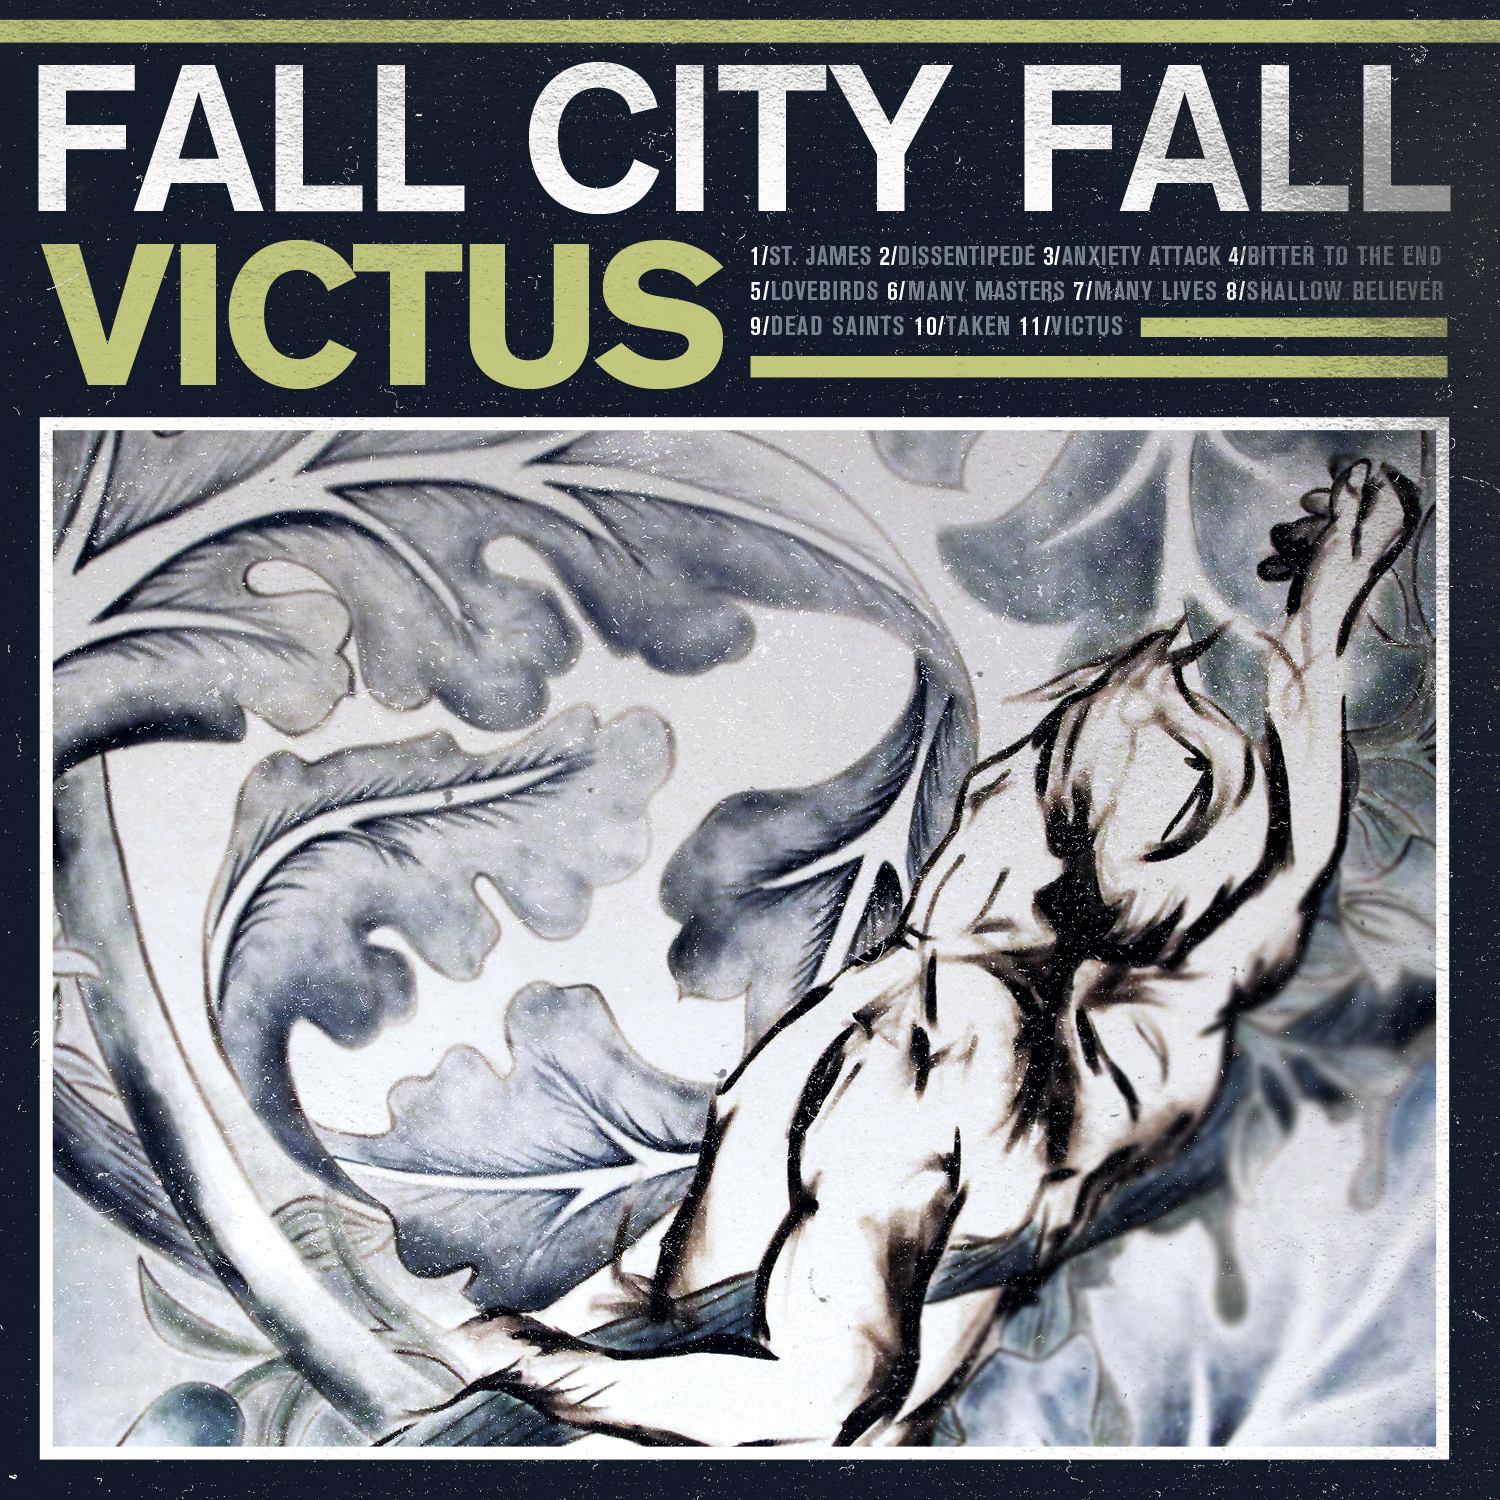 FALL CITY FALL – Victus